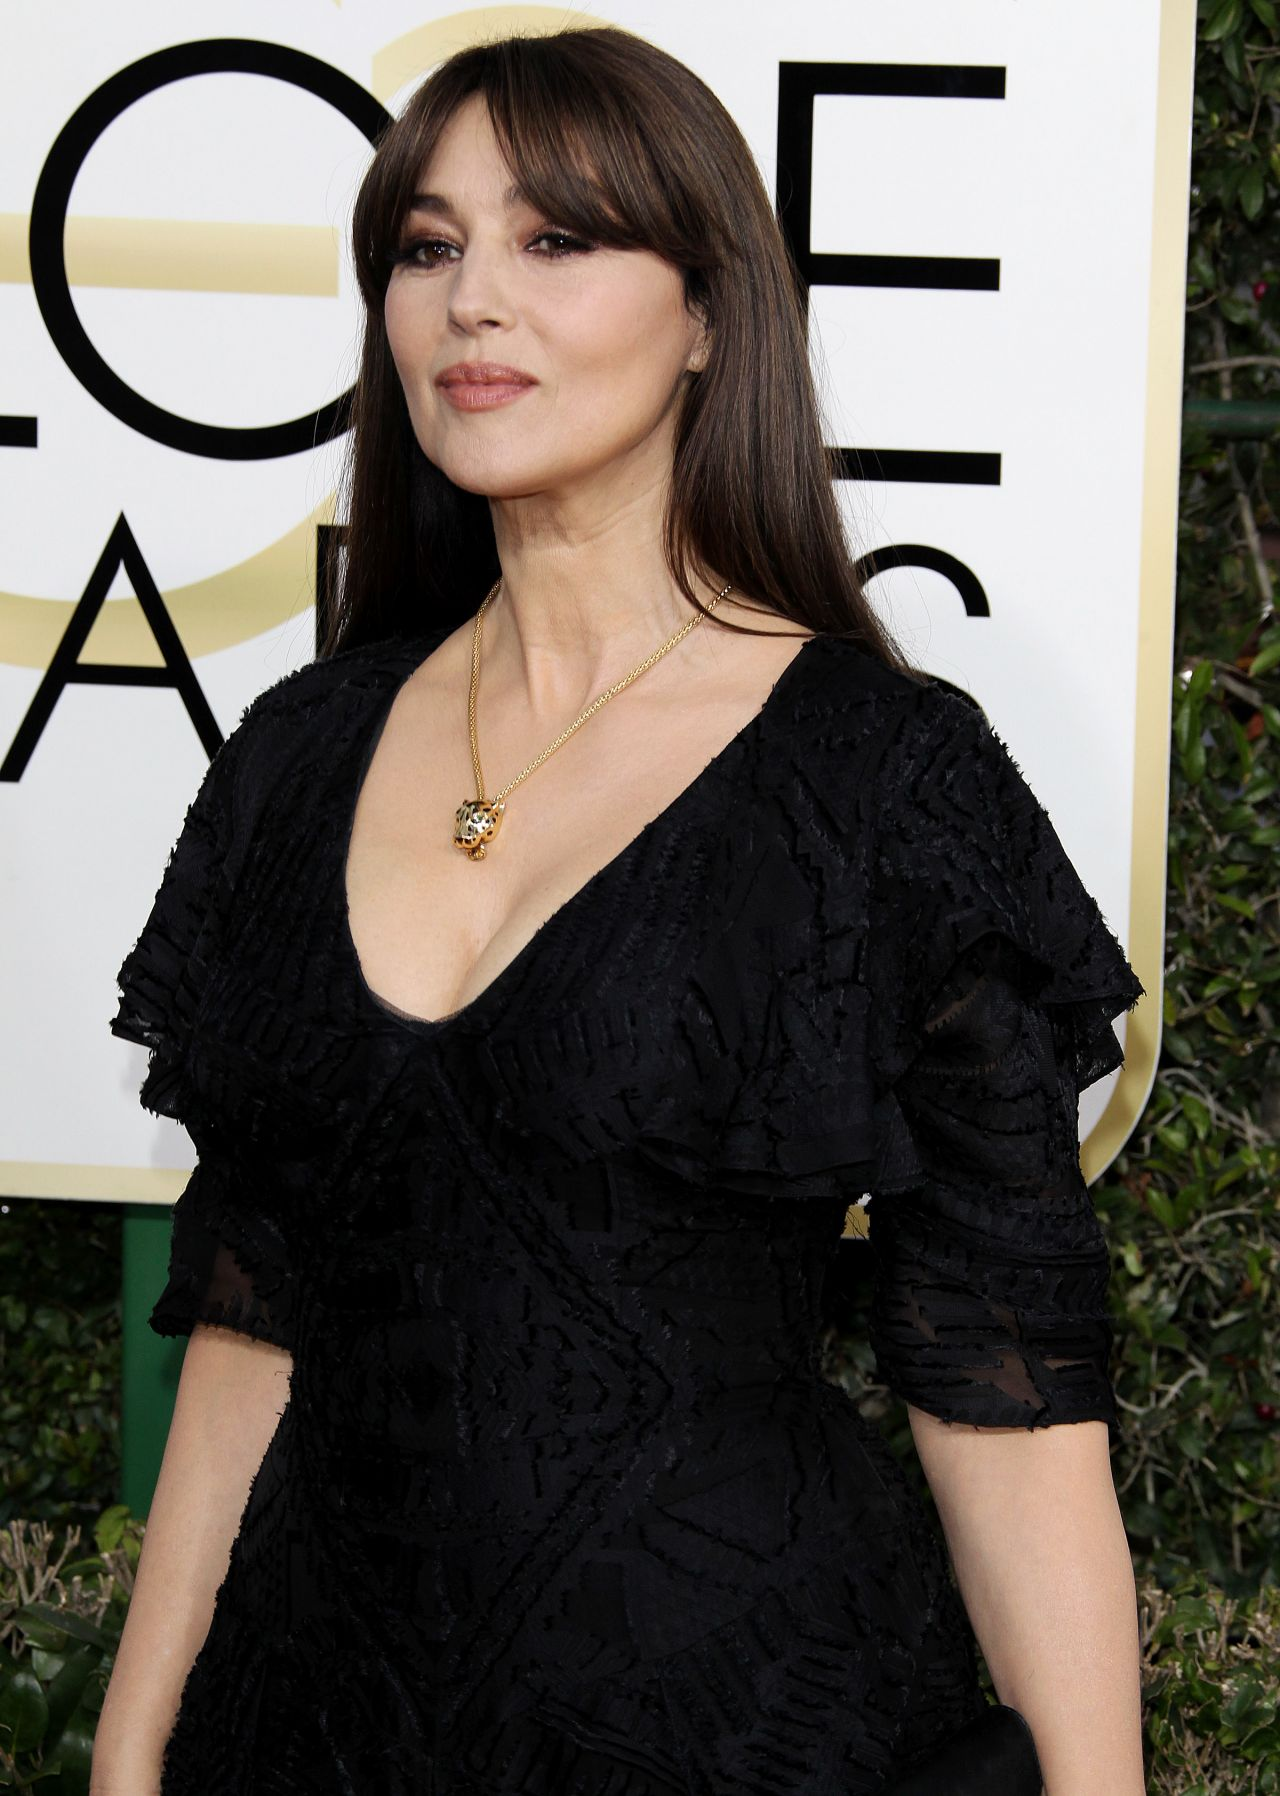 monica-bellucci-golden-globe-awards-in-beverly-hills-01-08-2017-1